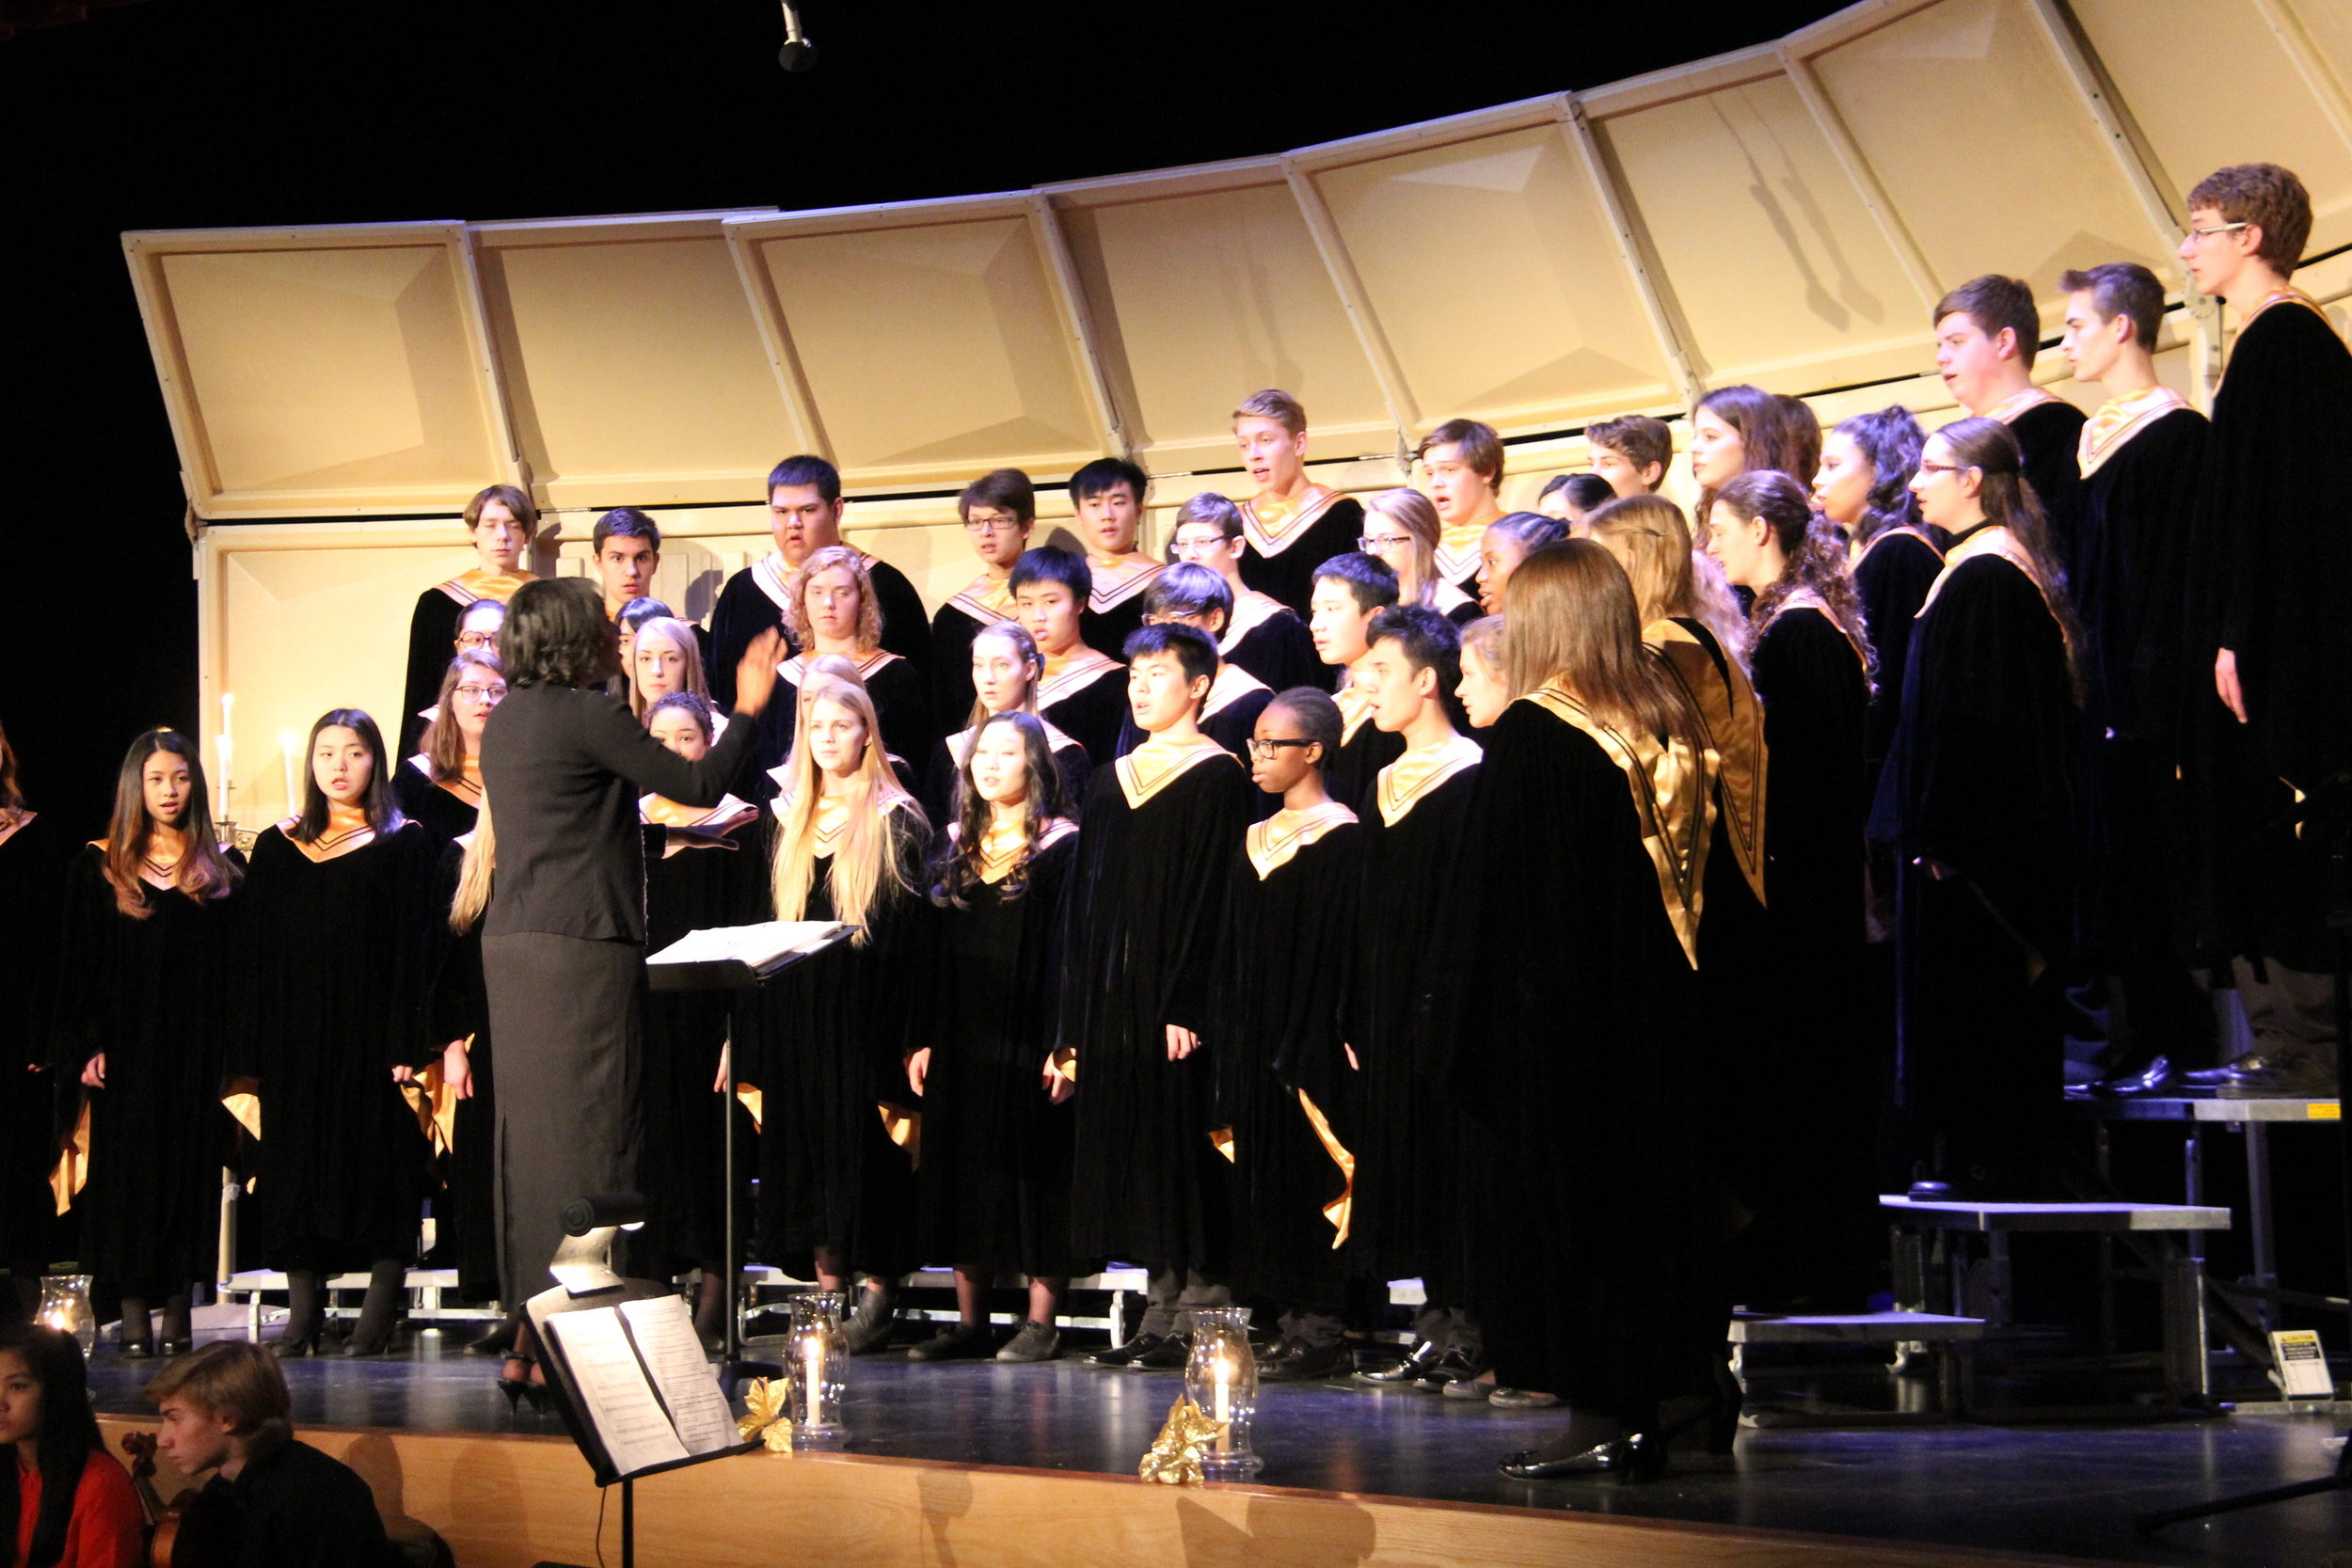 Melissa Morgan conducts the Luther College Senior Choir during their Christmas Candlelight Service. Luther College Belsher Centre,December 2014